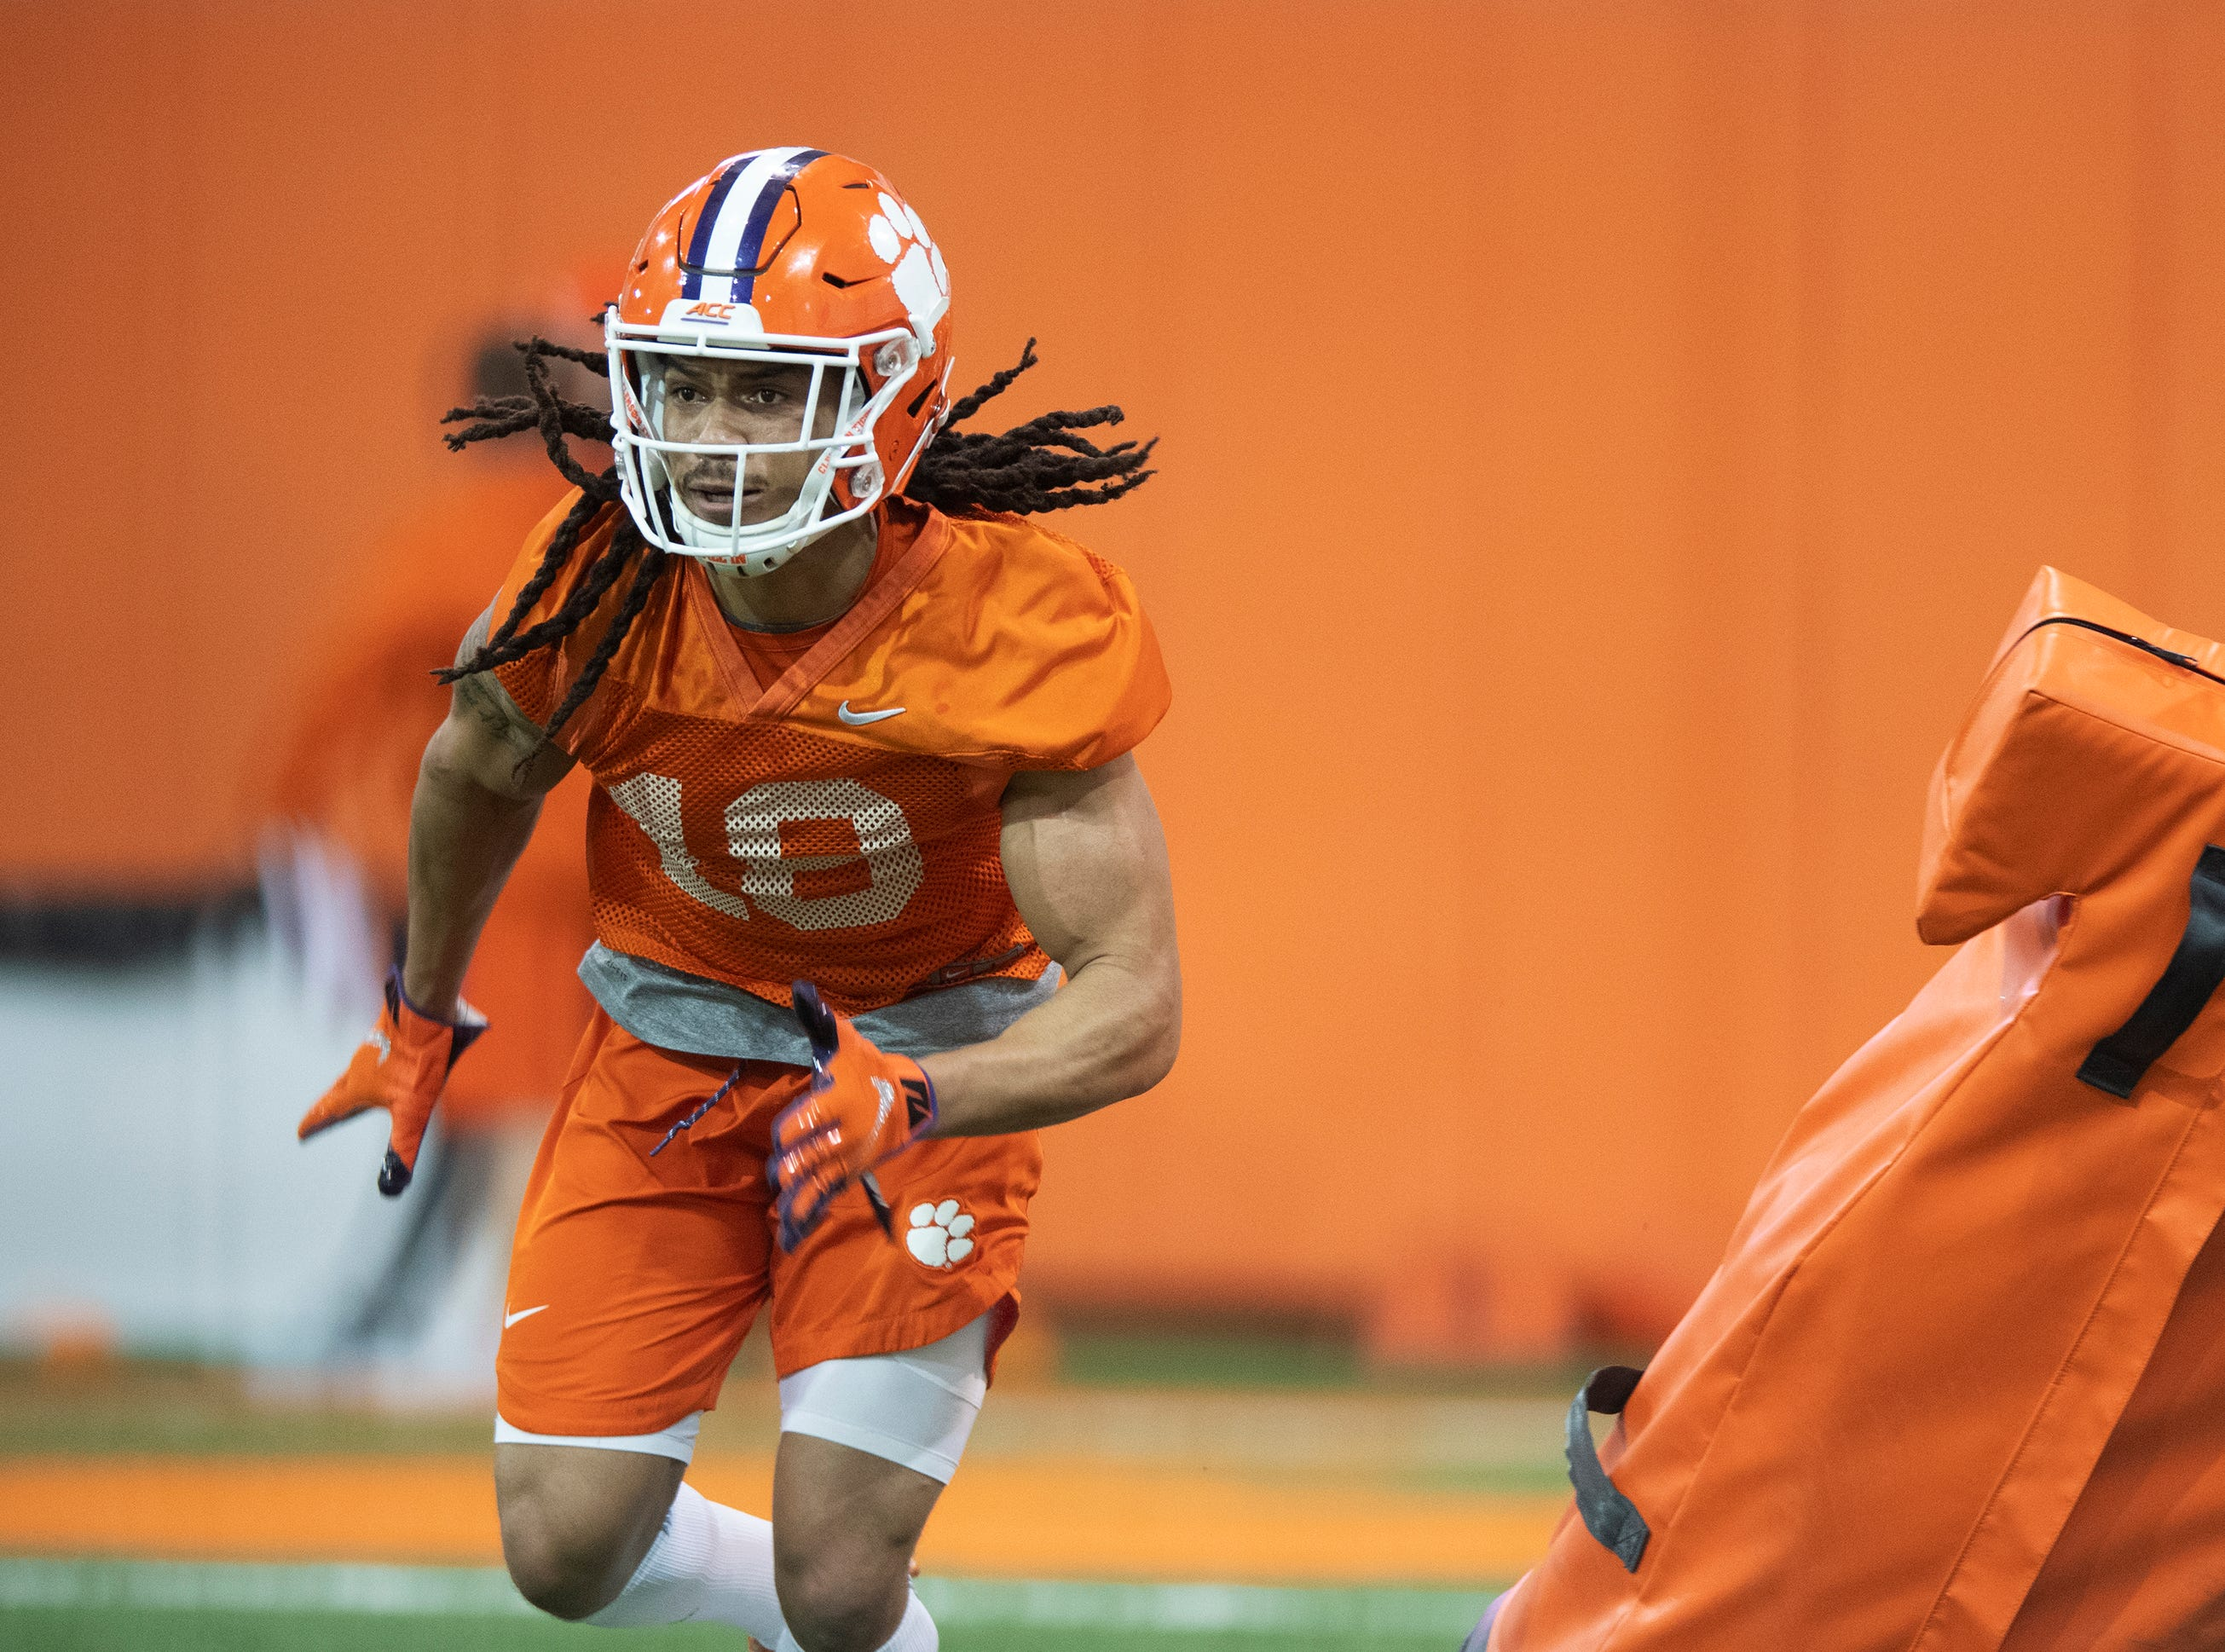 Clemson wide receiver T.J. Chase (18) practices at the Poe Indoor Football Facility Friday, Mar. 1, 2019.